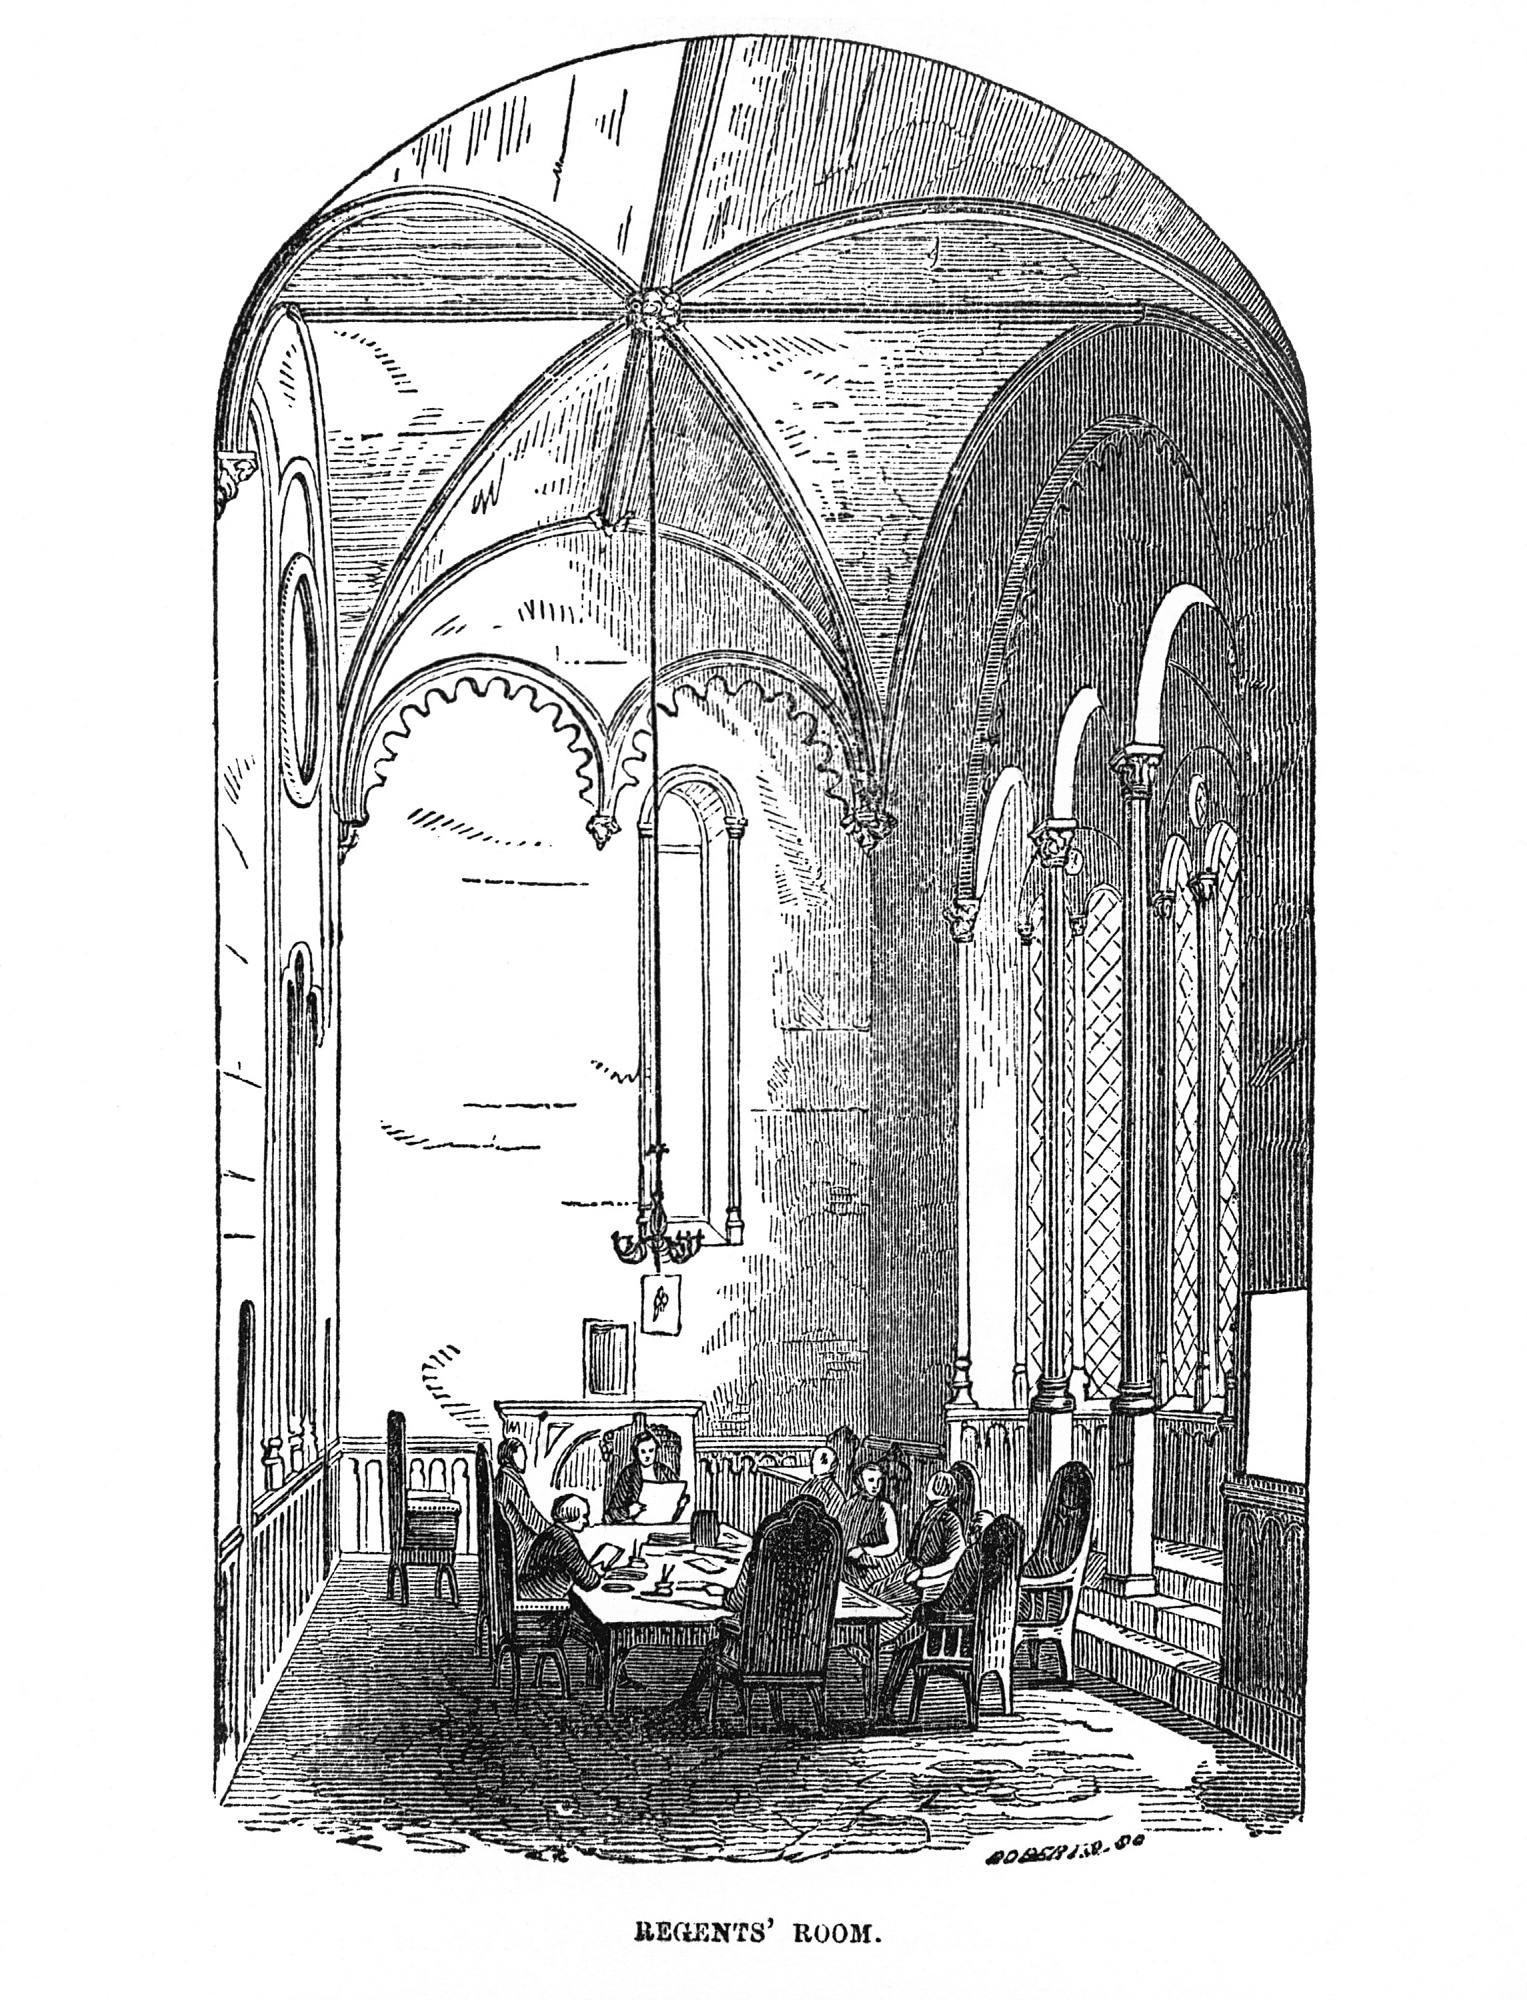 Regents' Room in Smithsonian Institution Building